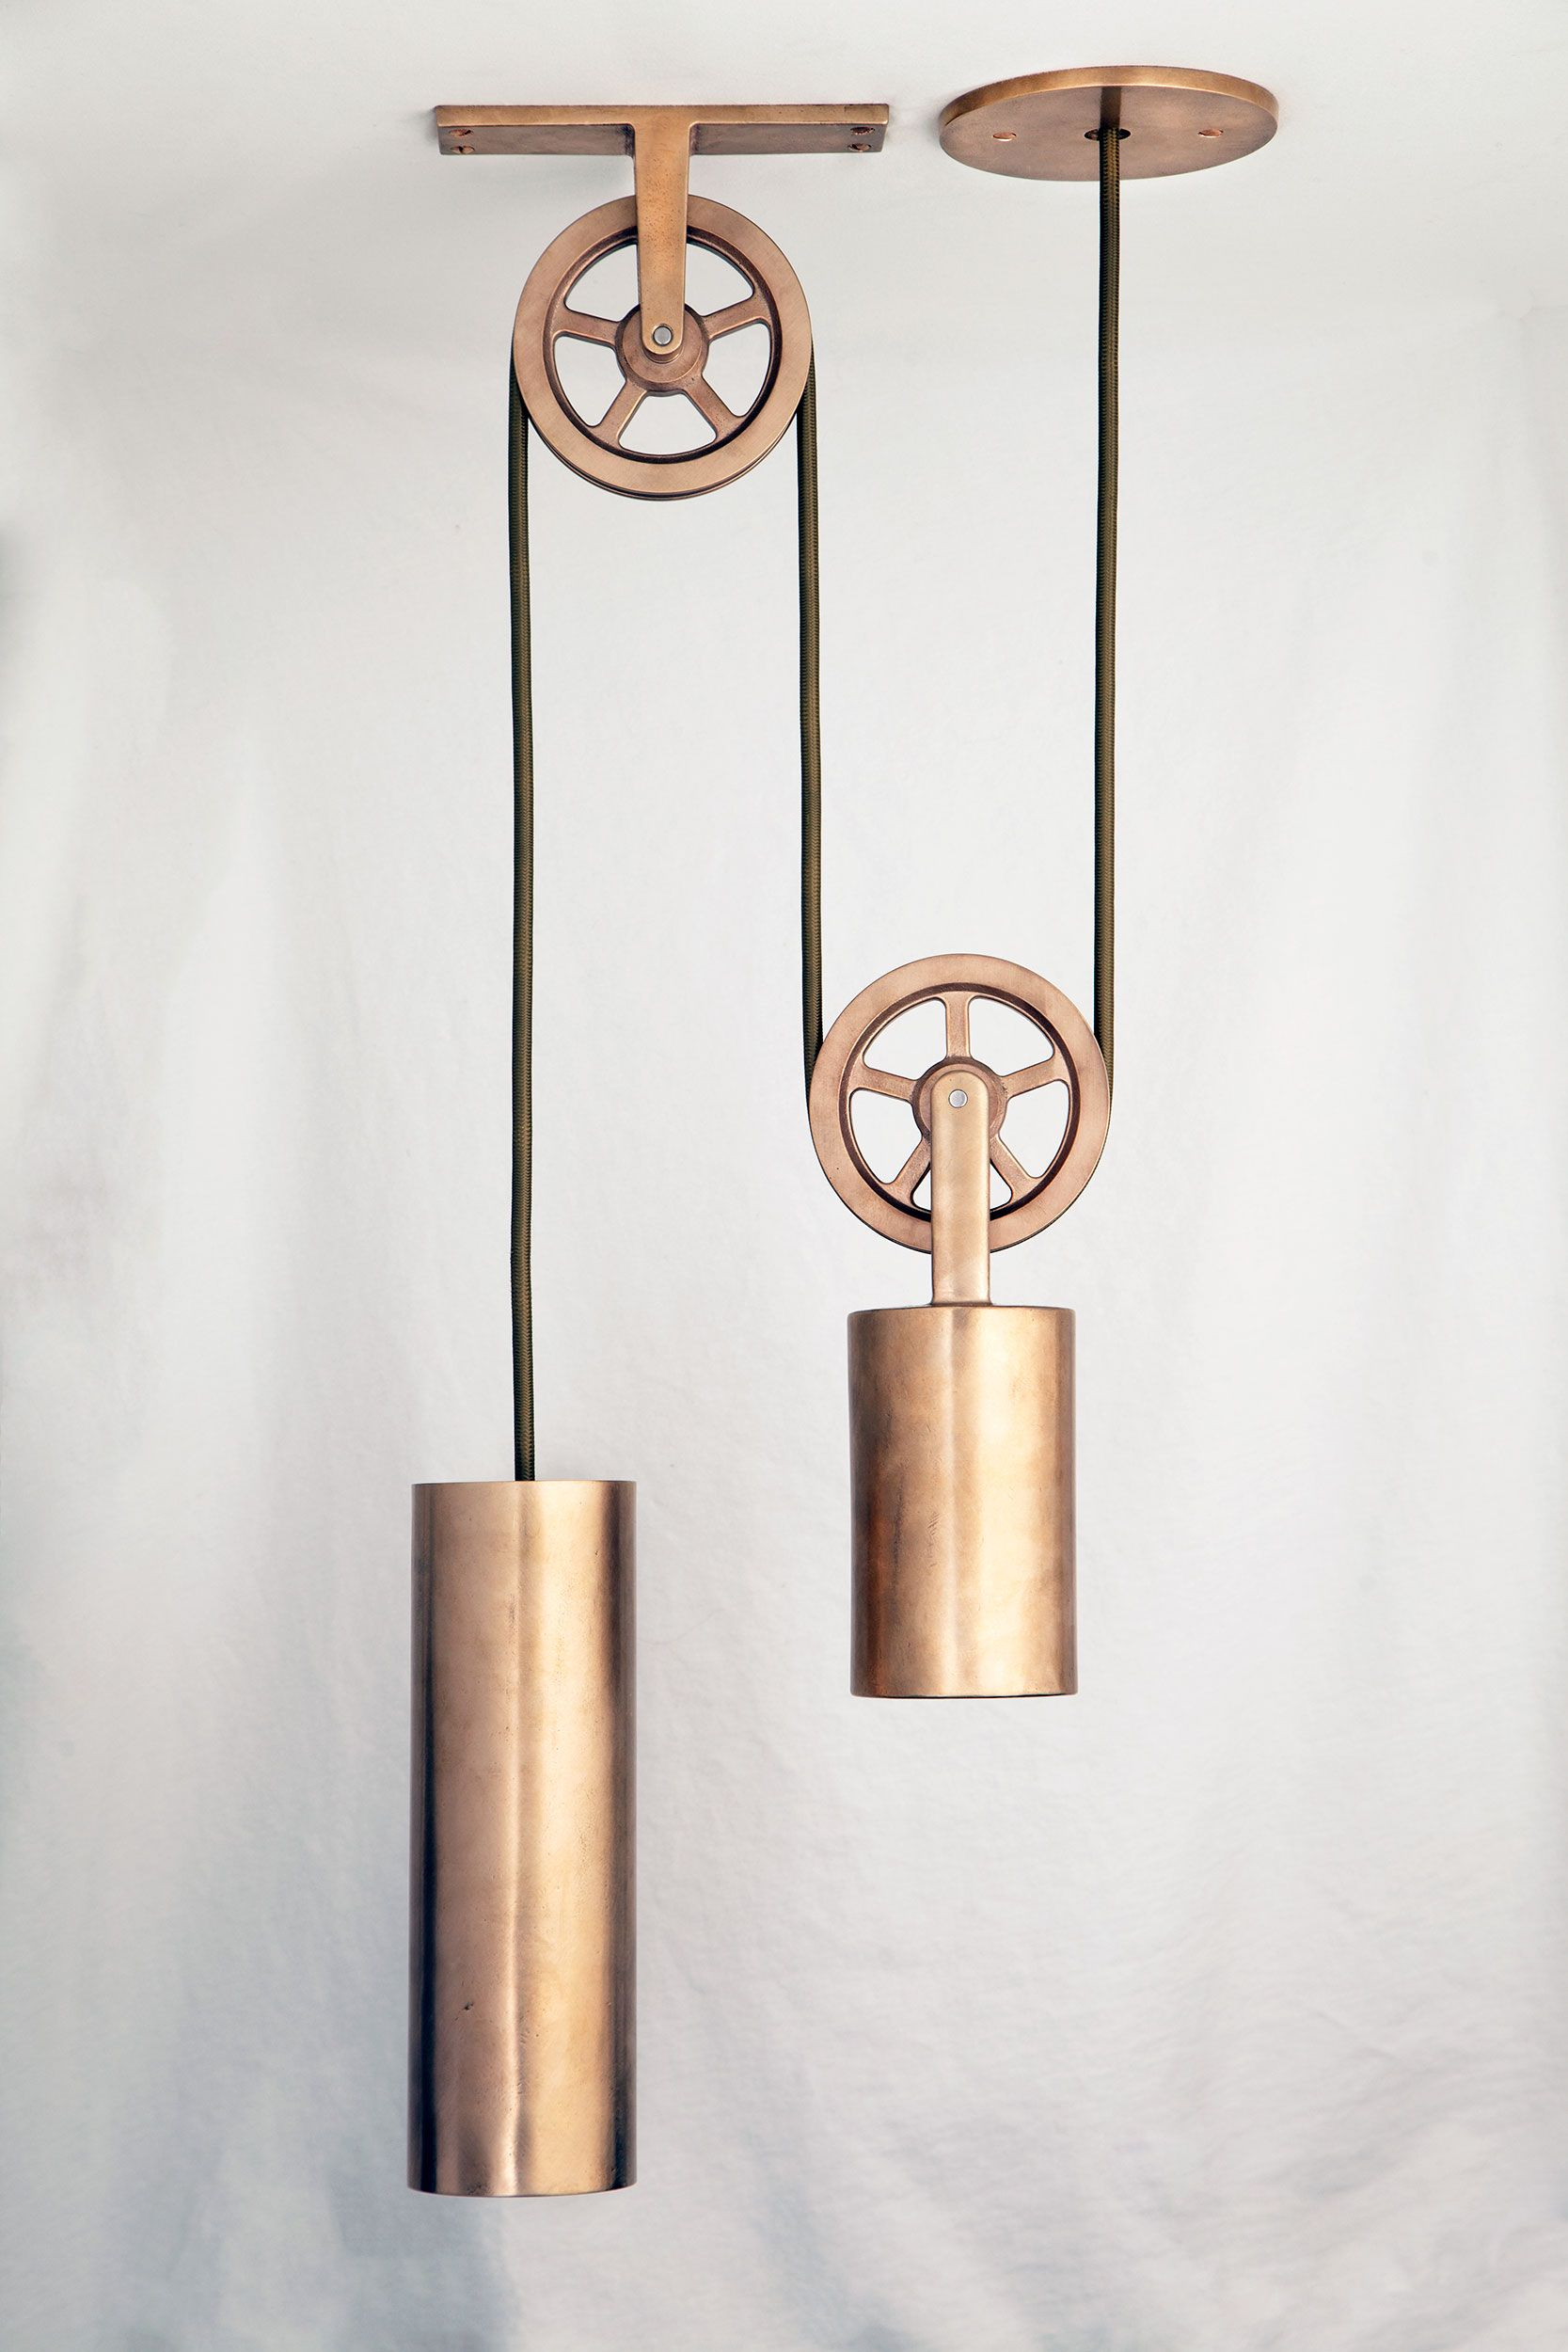 pend 2000 pendant pulley light lighting pulley light sun valley rh pinterest com